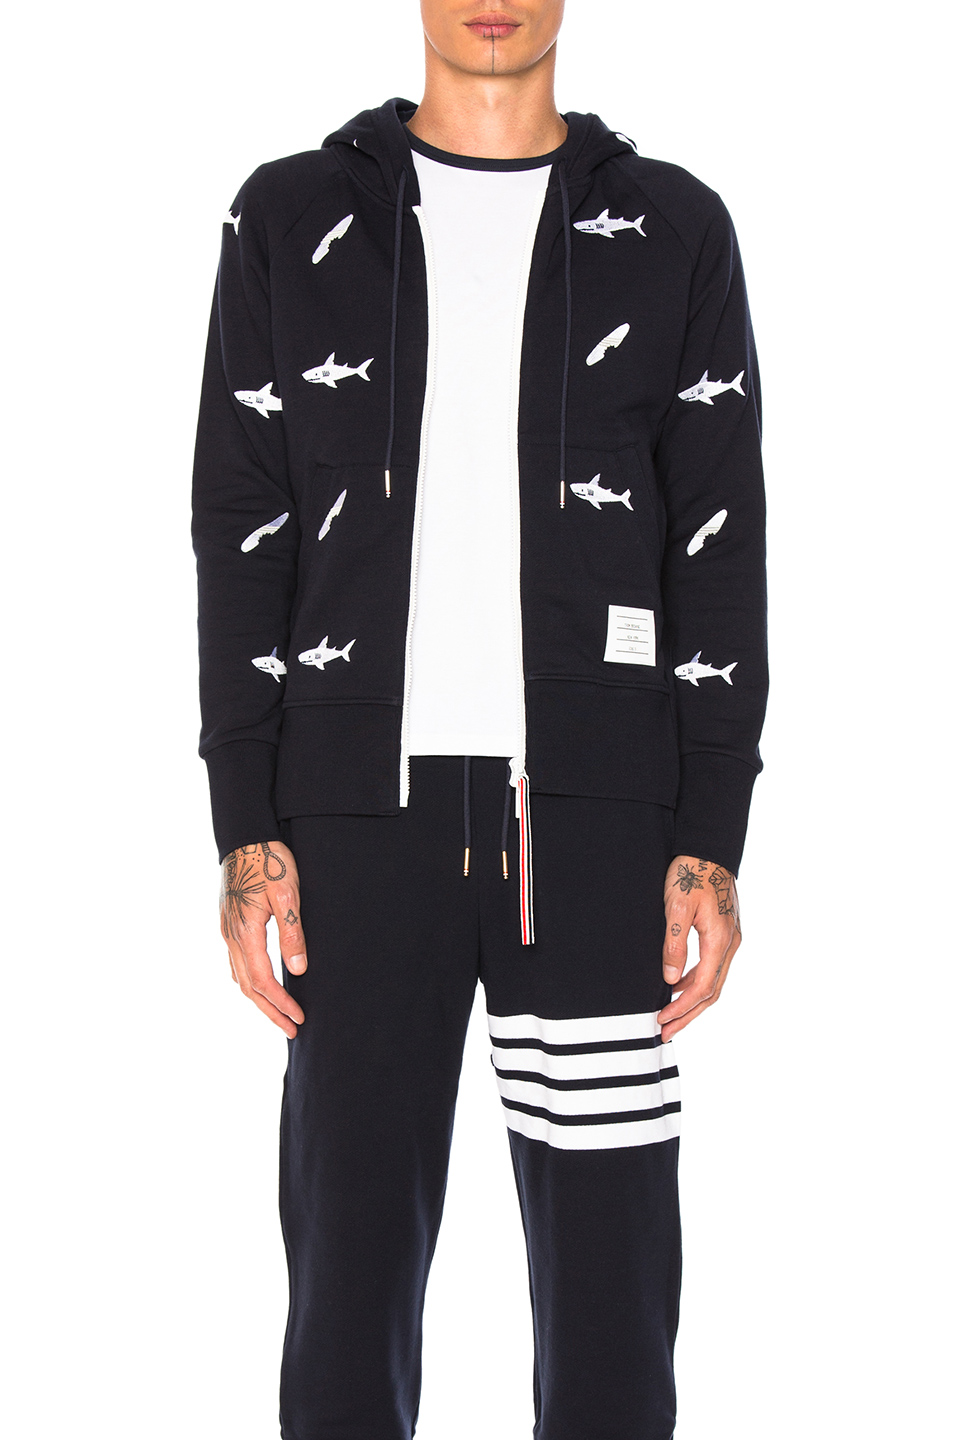 Thom Browne Shark & Surfboard Embroidery Zip Hoodie in Blue